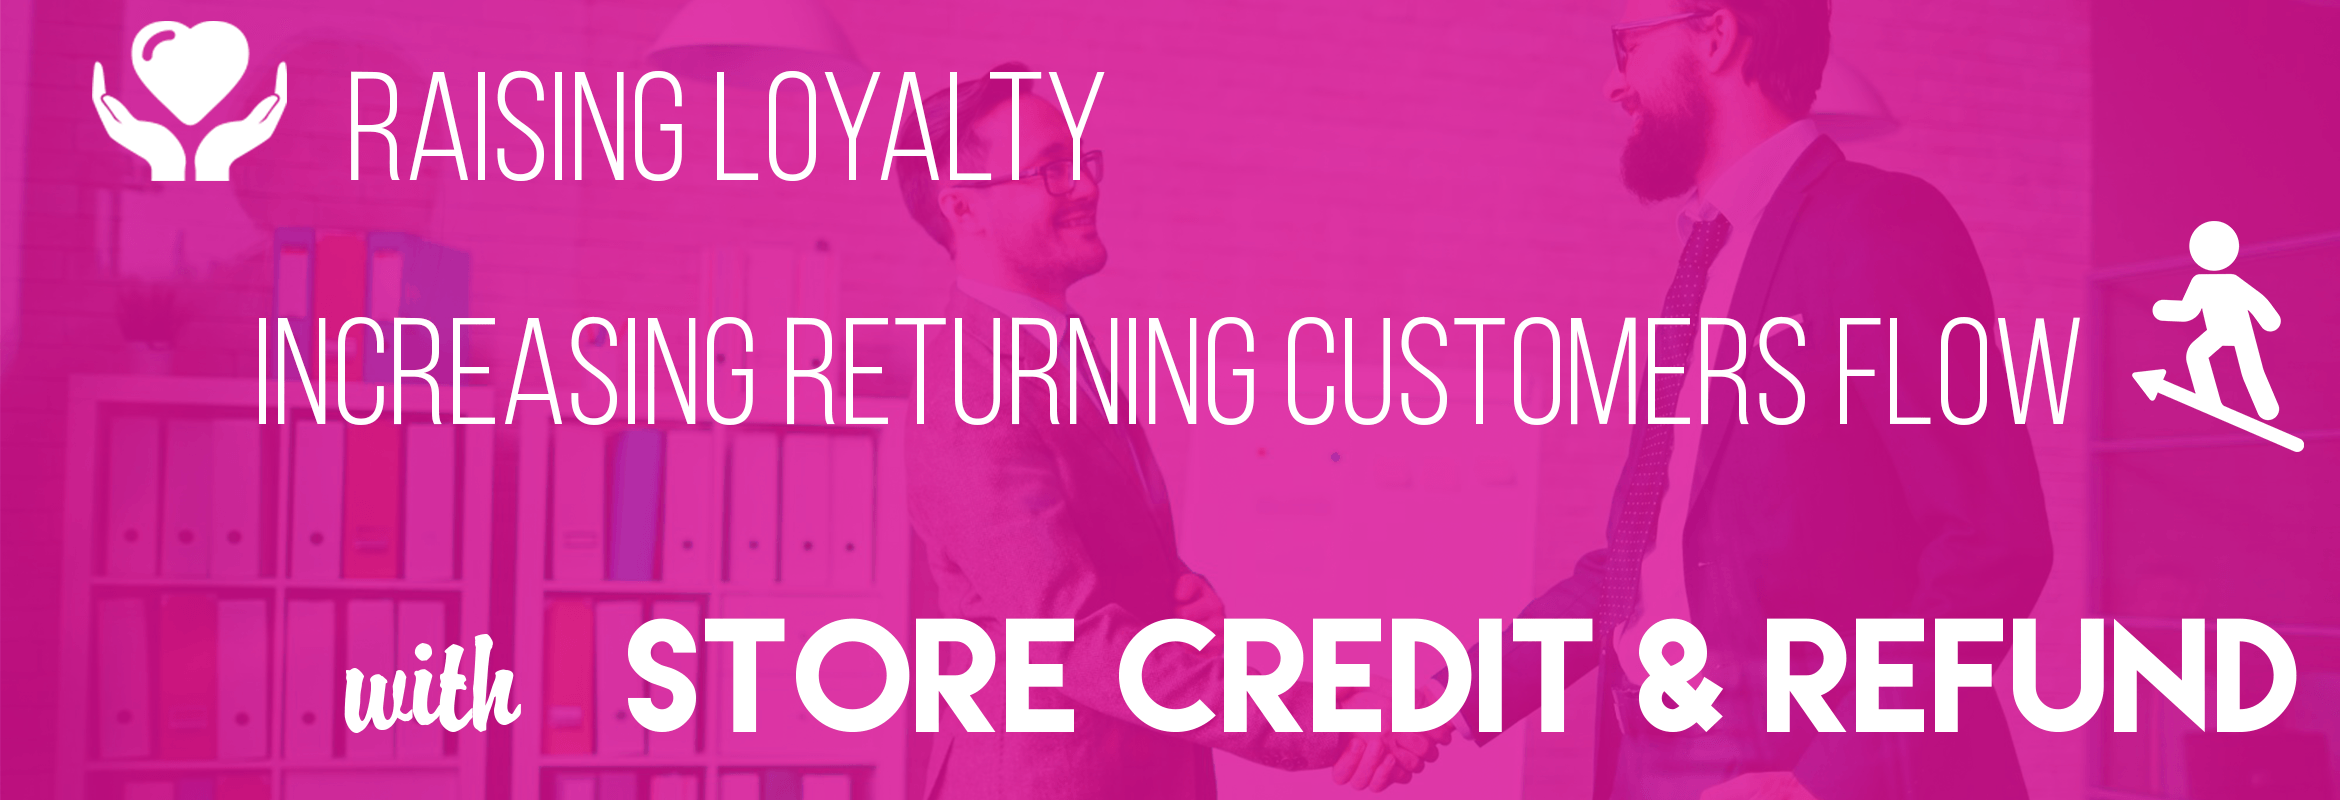 Raising Loyalty And Increasing Returning Customers Flow With Store Credit & Refund